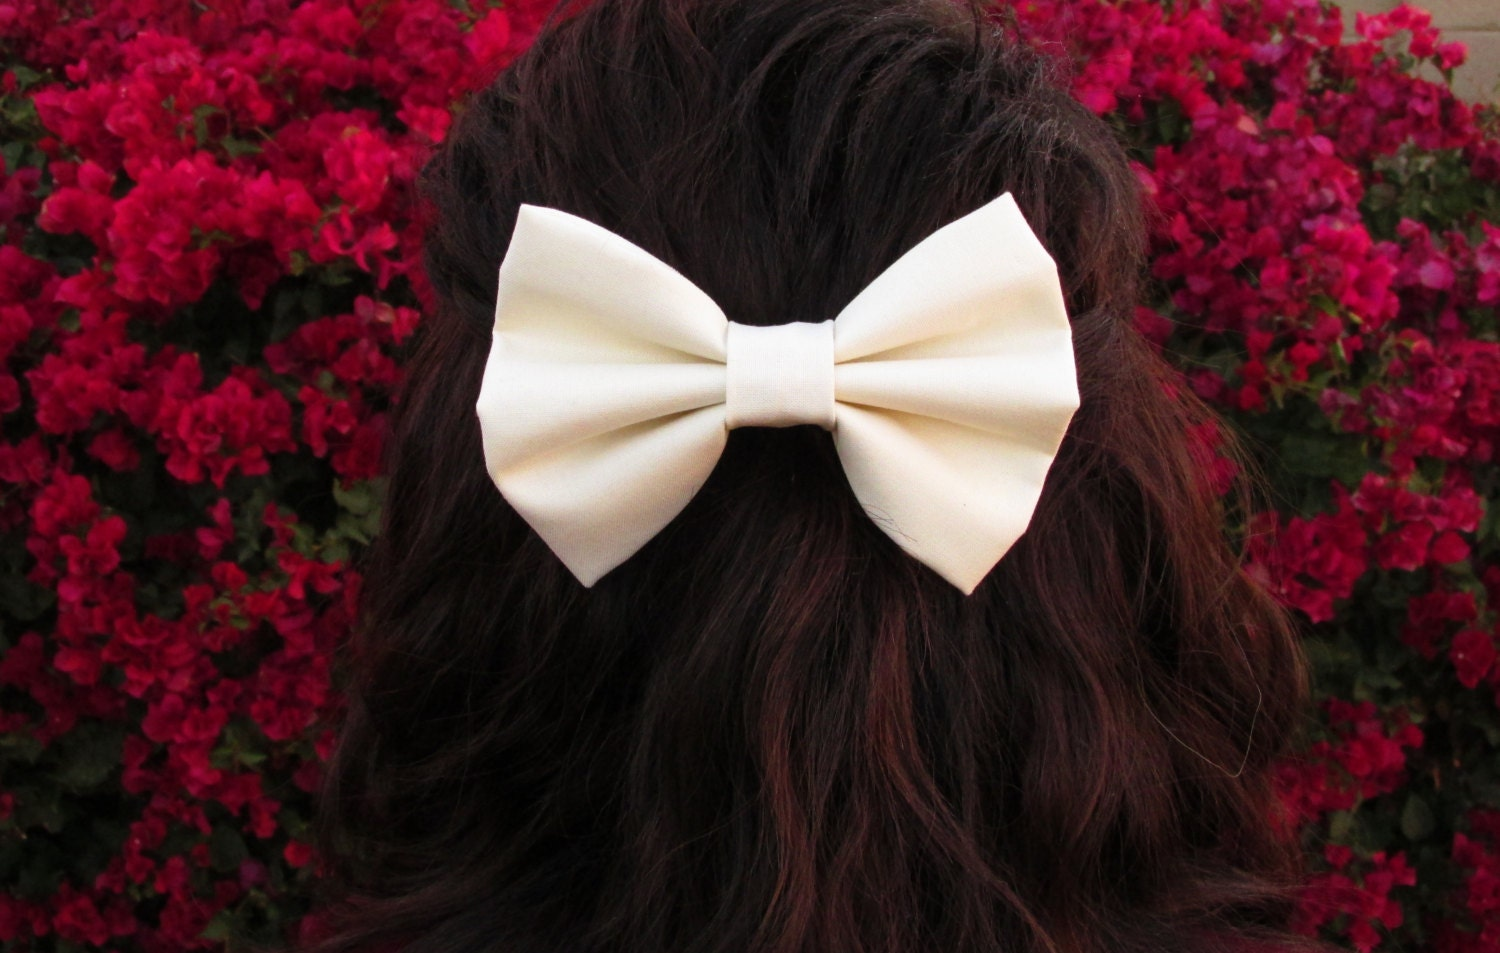 The baby hair bows clips are absolutely adorable and well great for PIDOUDOU Set of 6 Big Satin Solid 8 Inch Bow Hair Clips Women Barrettes. by Pidoudou. $ $ 12 90 ($/Count) FREE Shipping on eligible orders. out of 5 stars Product Features 6 different big bow .